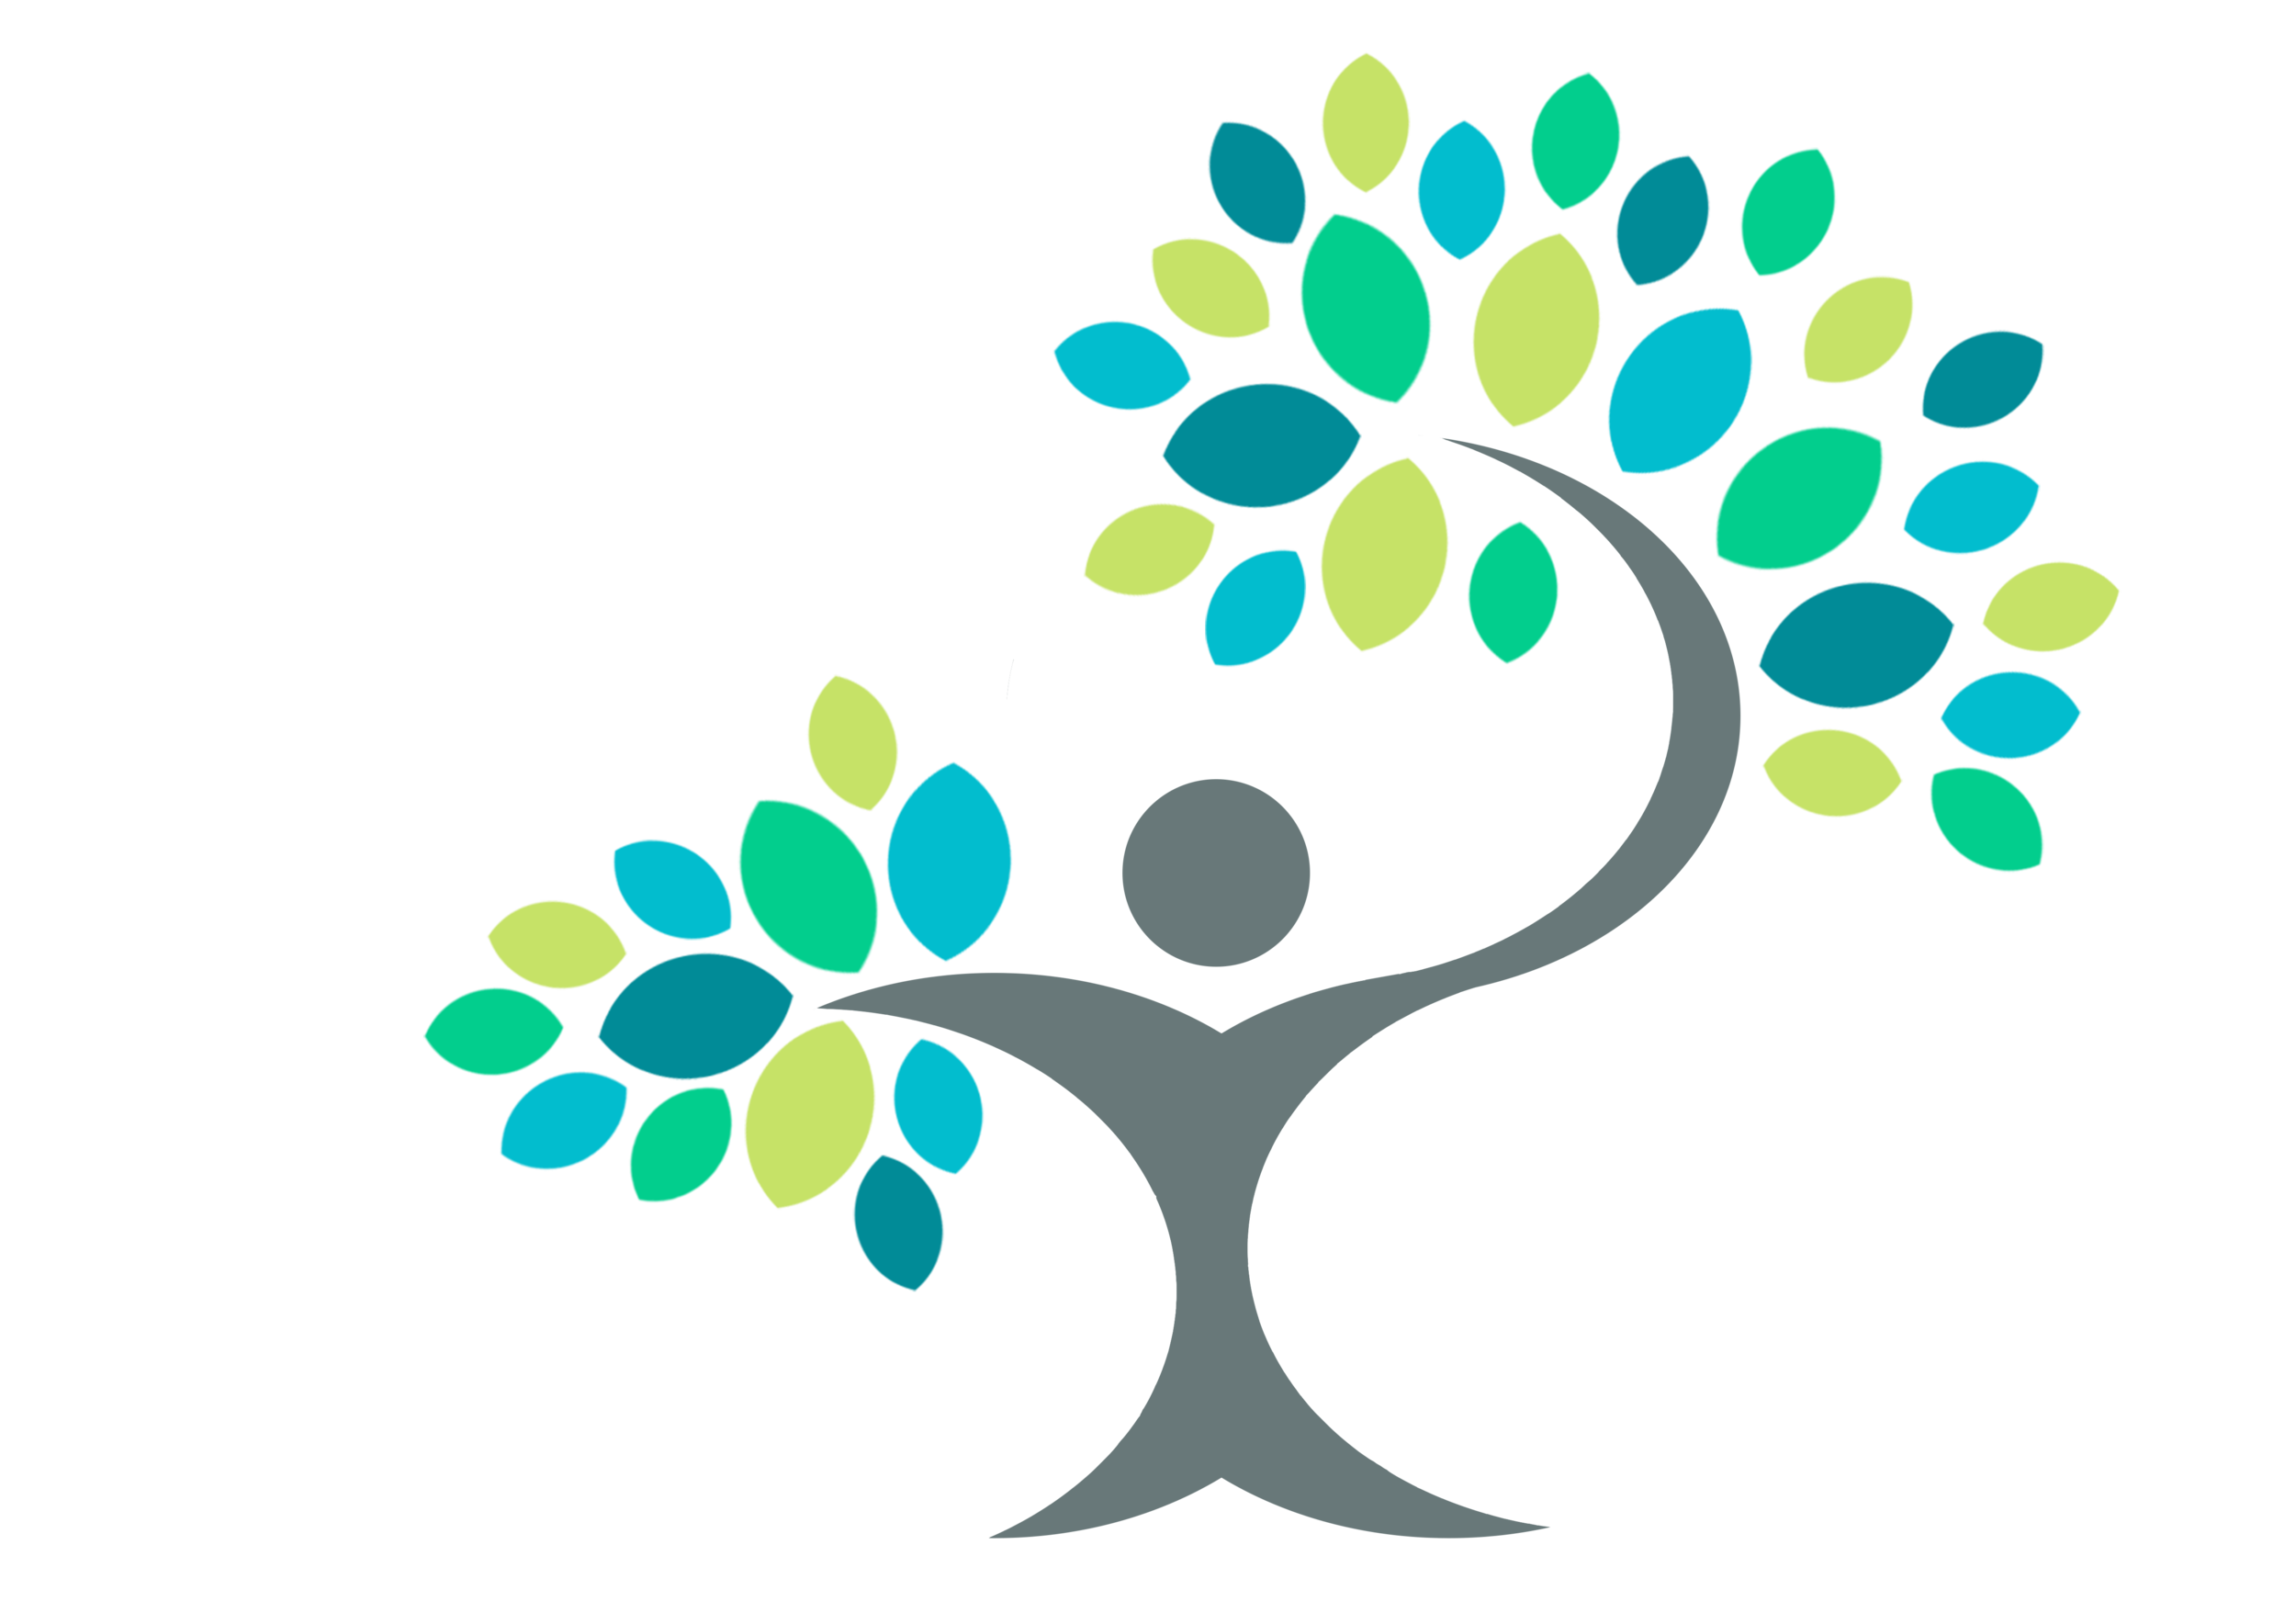 ARCH LAB LOGO _TREE ONLY_blank background.png